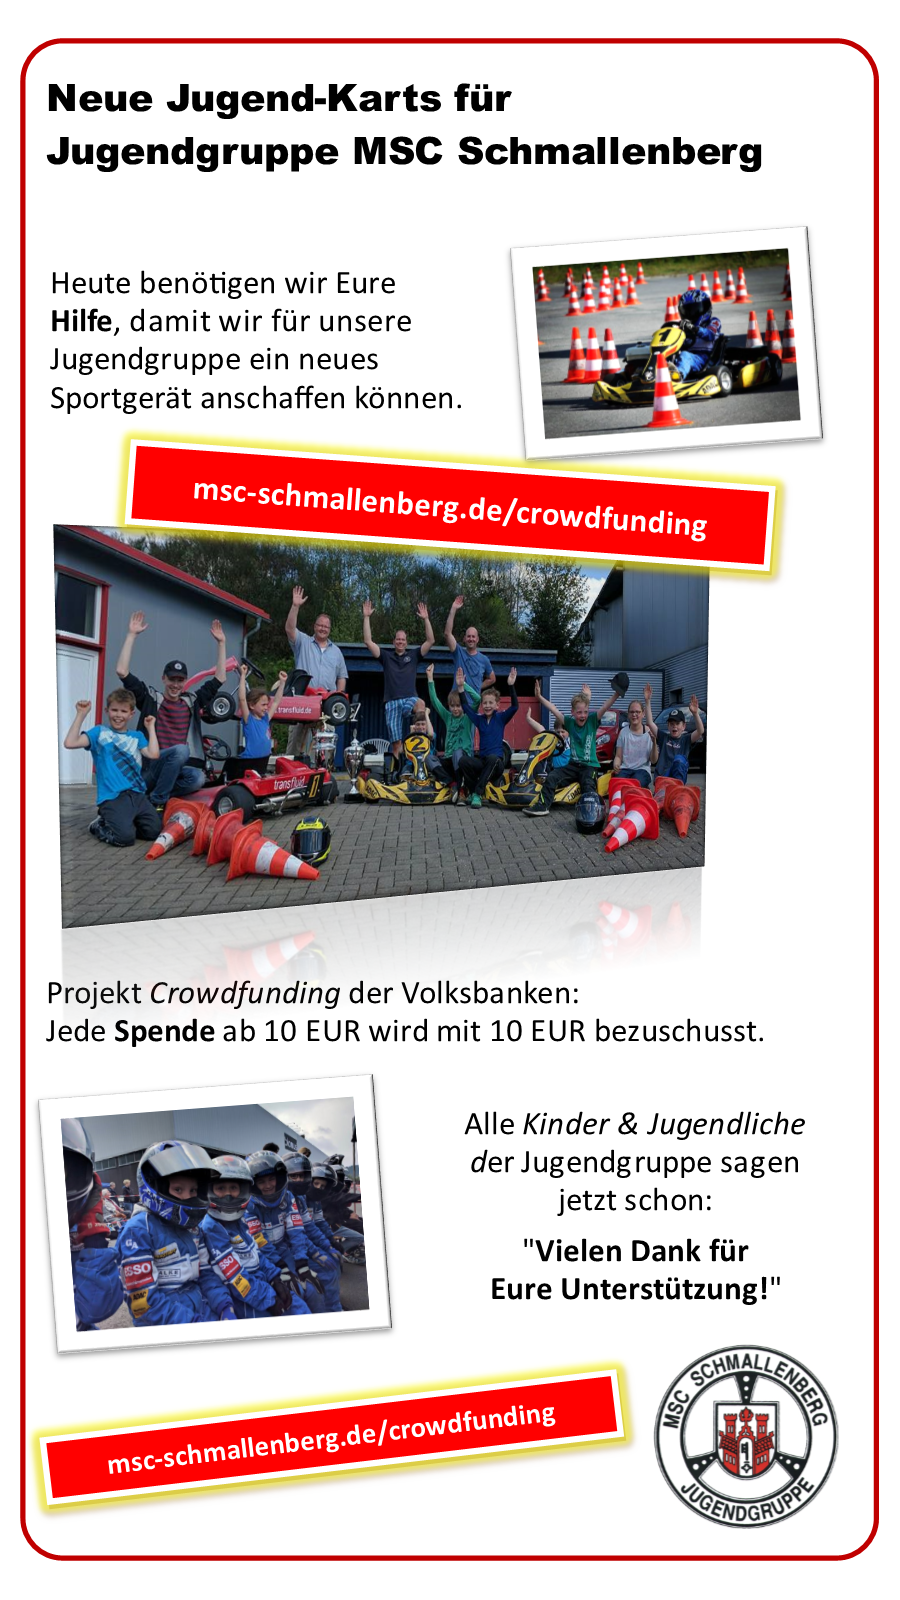 https://msc-schmallenberg.de/crowdfunding/